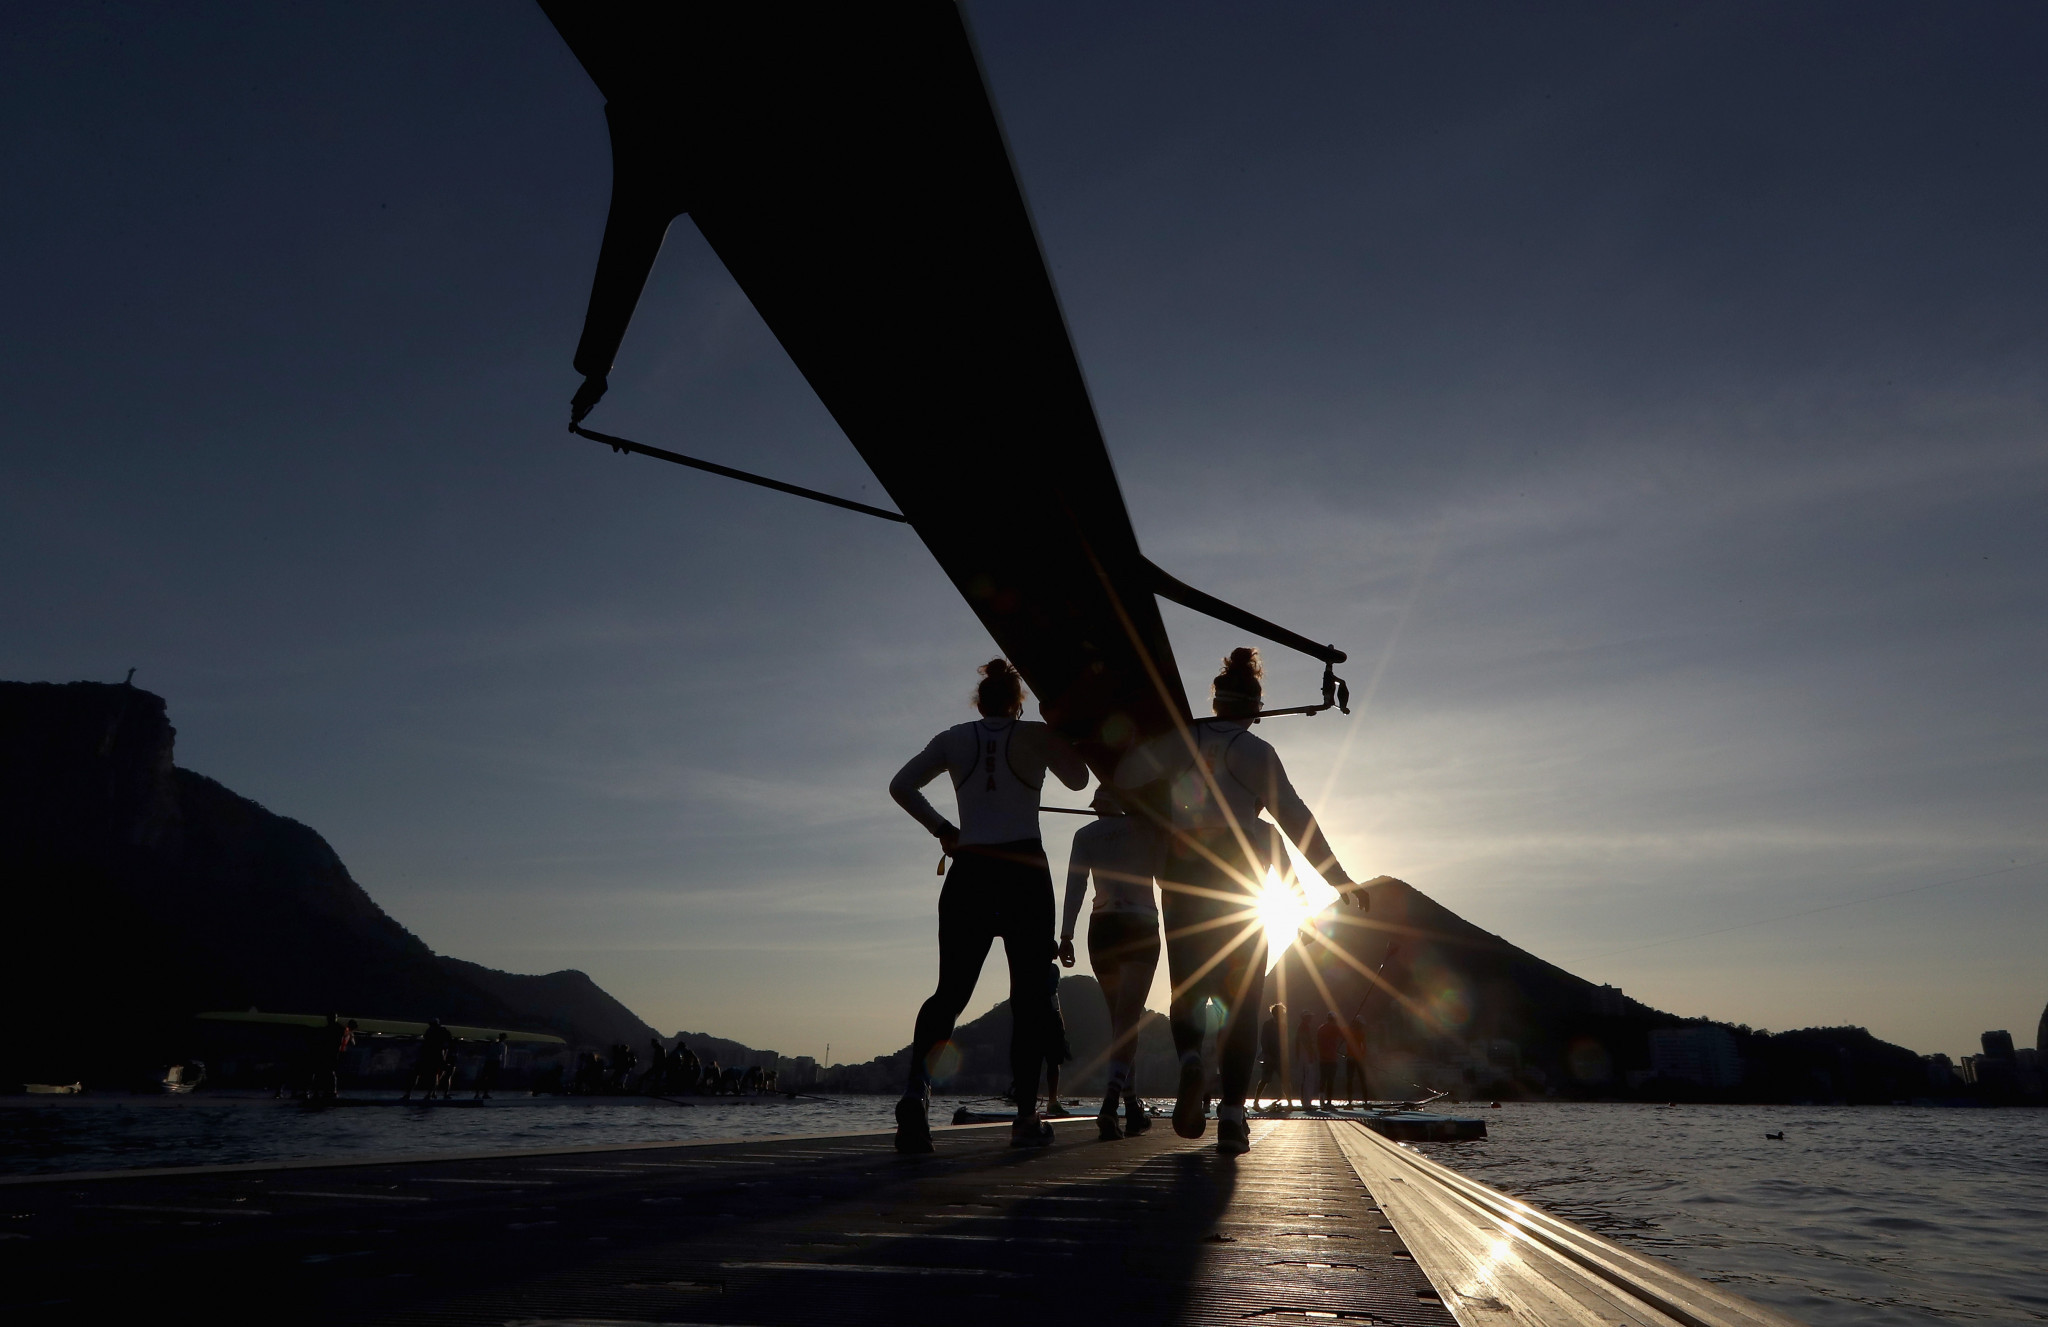 Americas Olympic and Paralympic rowing qualifier given provisional March dates